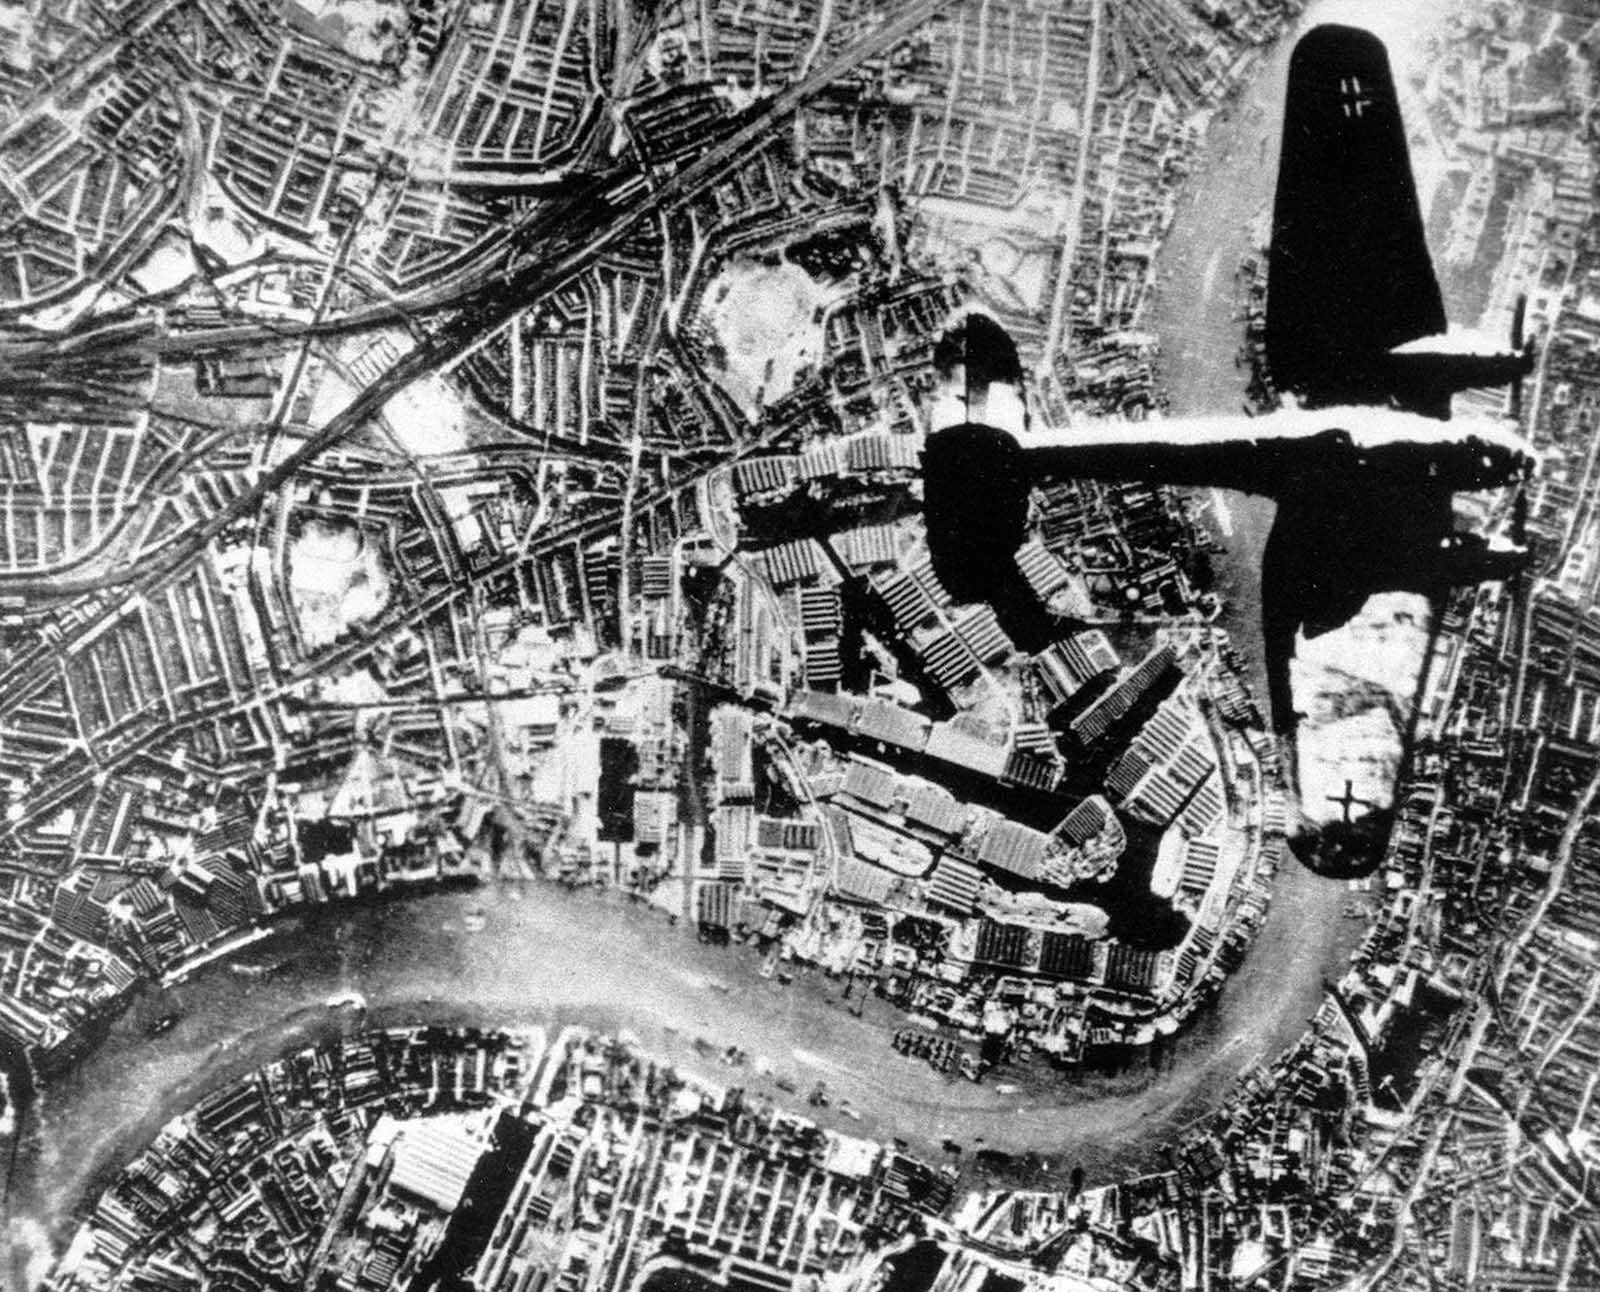 A Nazi Heinkel He 111 bomber flies over London in the autumn of 1940. The Thames River runs through the image.